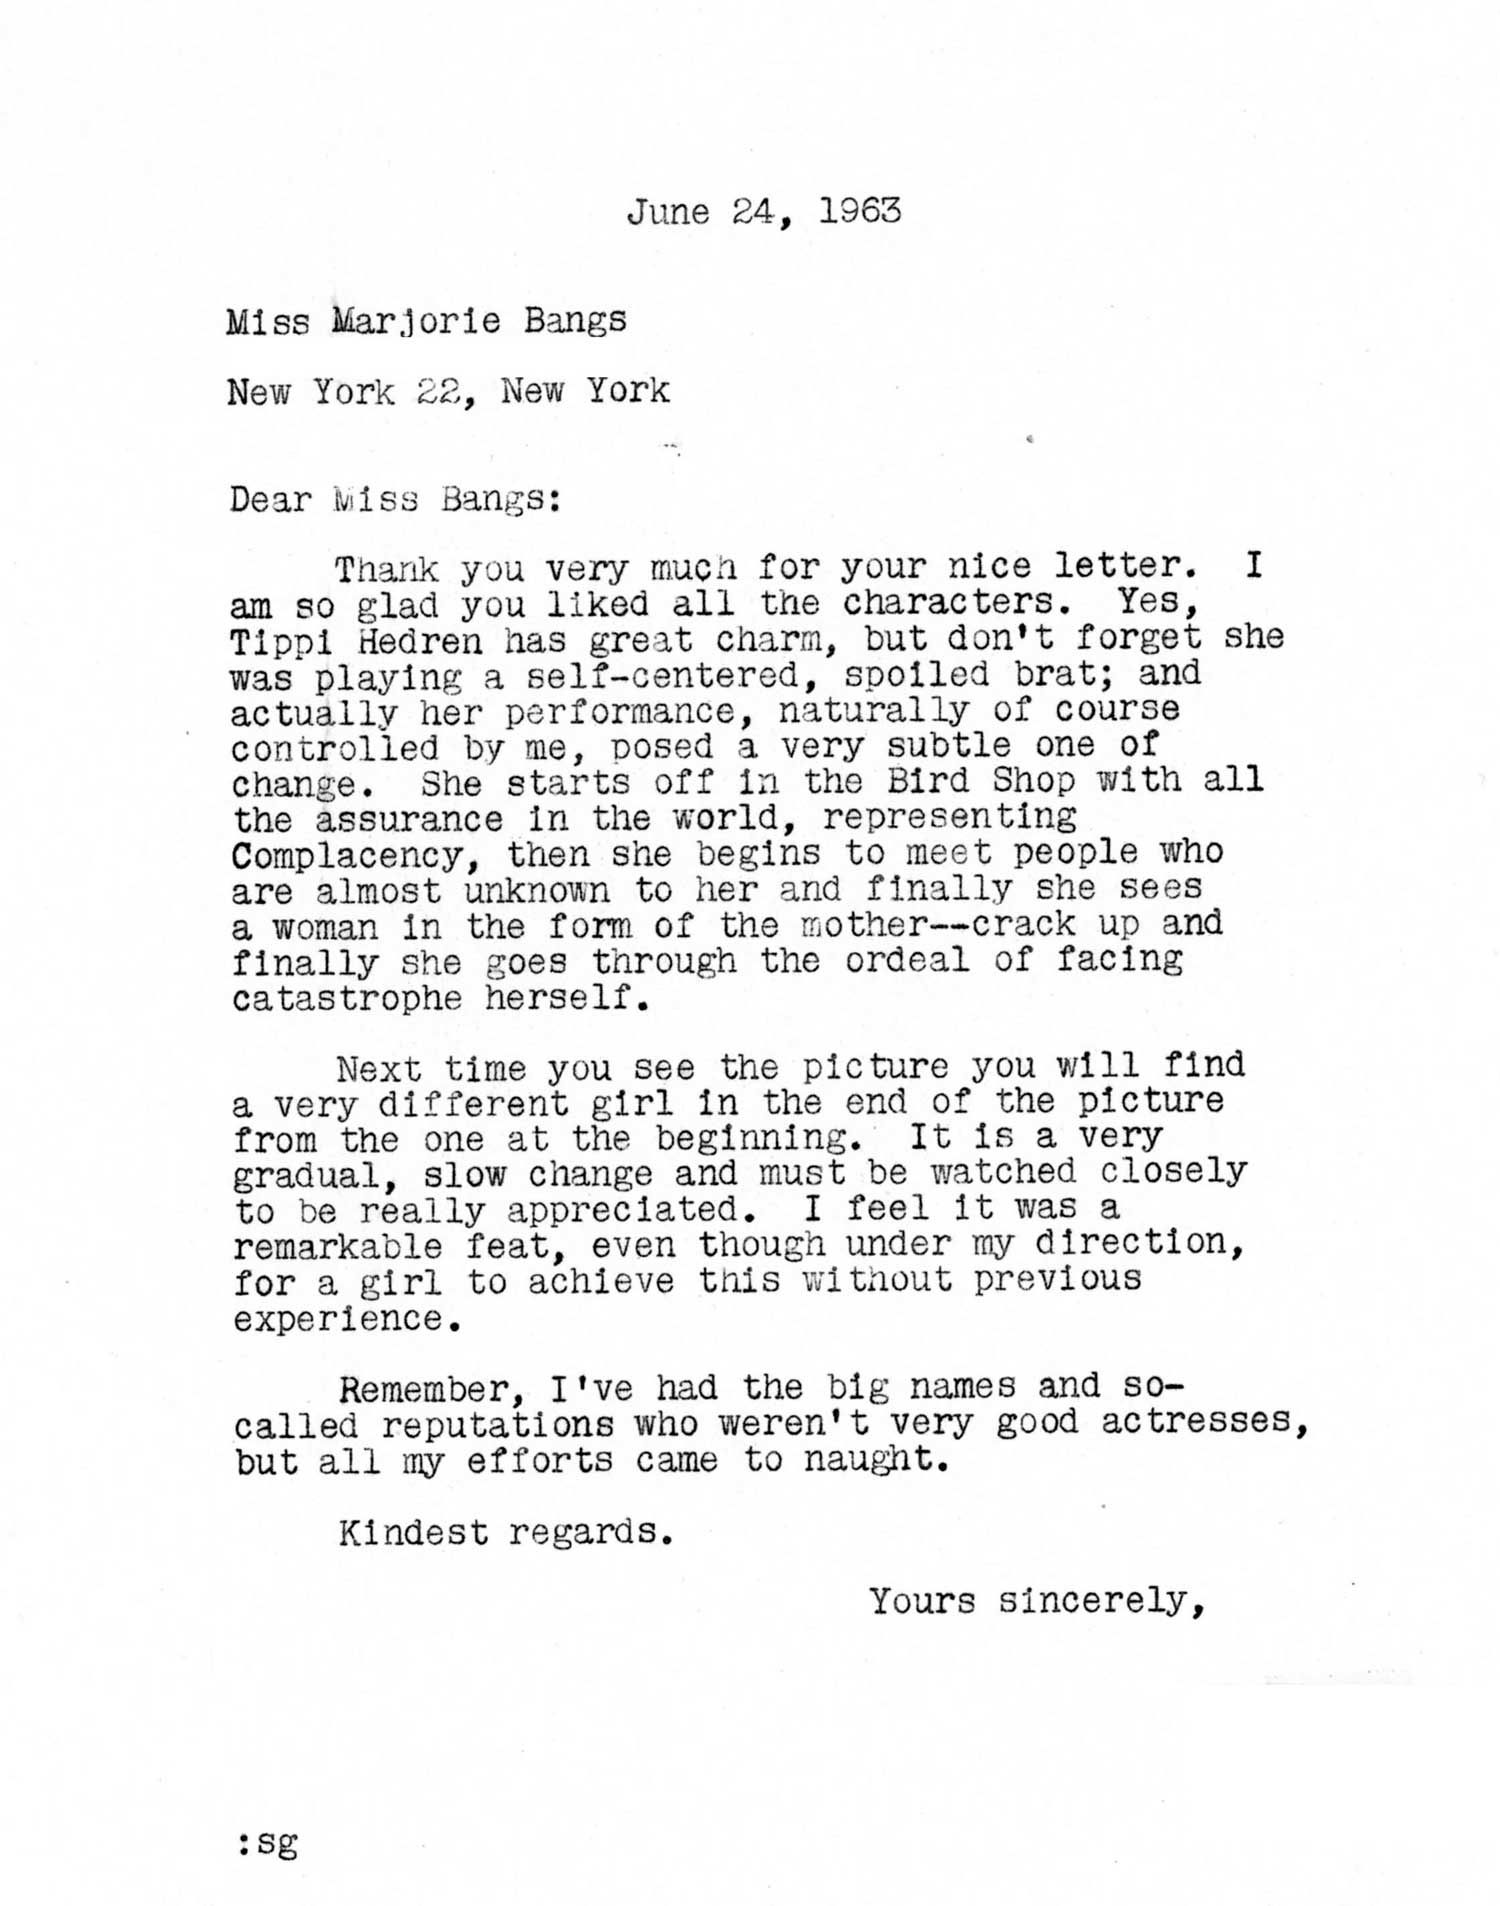 """Hitchcock often offered thoughtful responses to fan letters, such as this note about first-time actress Tippi Hedren in """"The Birds."""""""